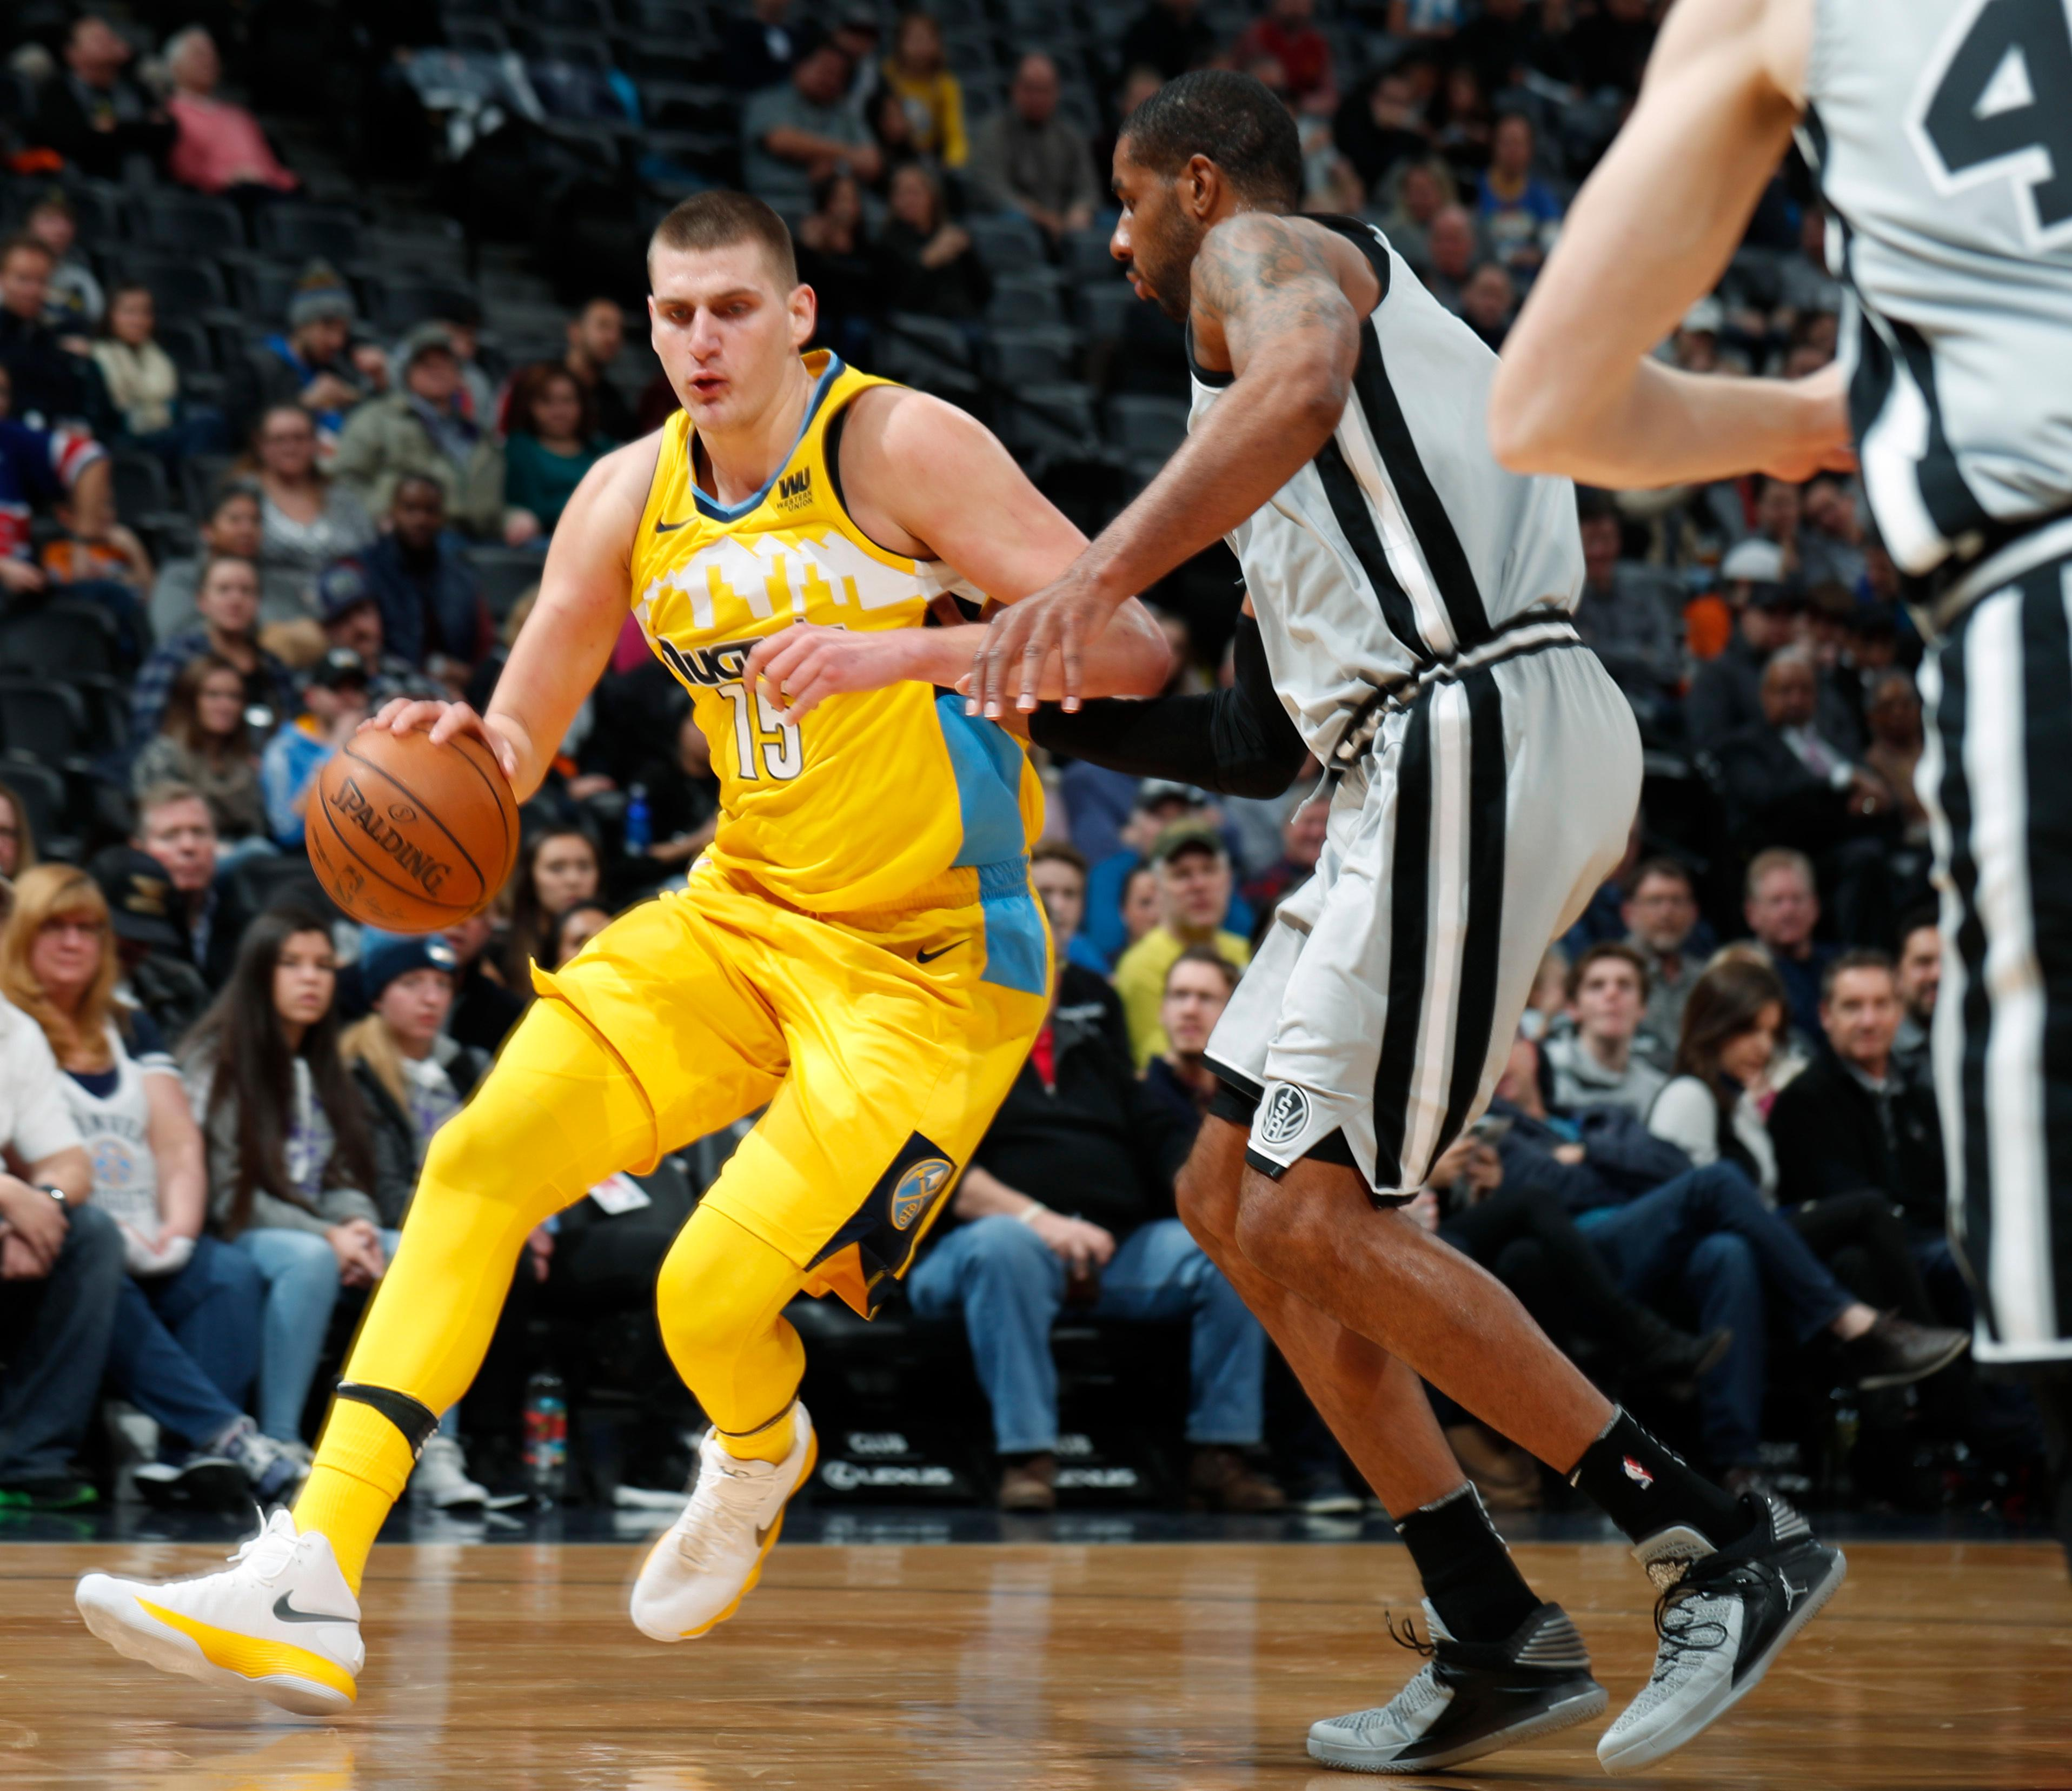 Denver Nuggets At San Antonio Spurs: Nuggets 122, Spurs 119: Who Shined And Who Didn't?